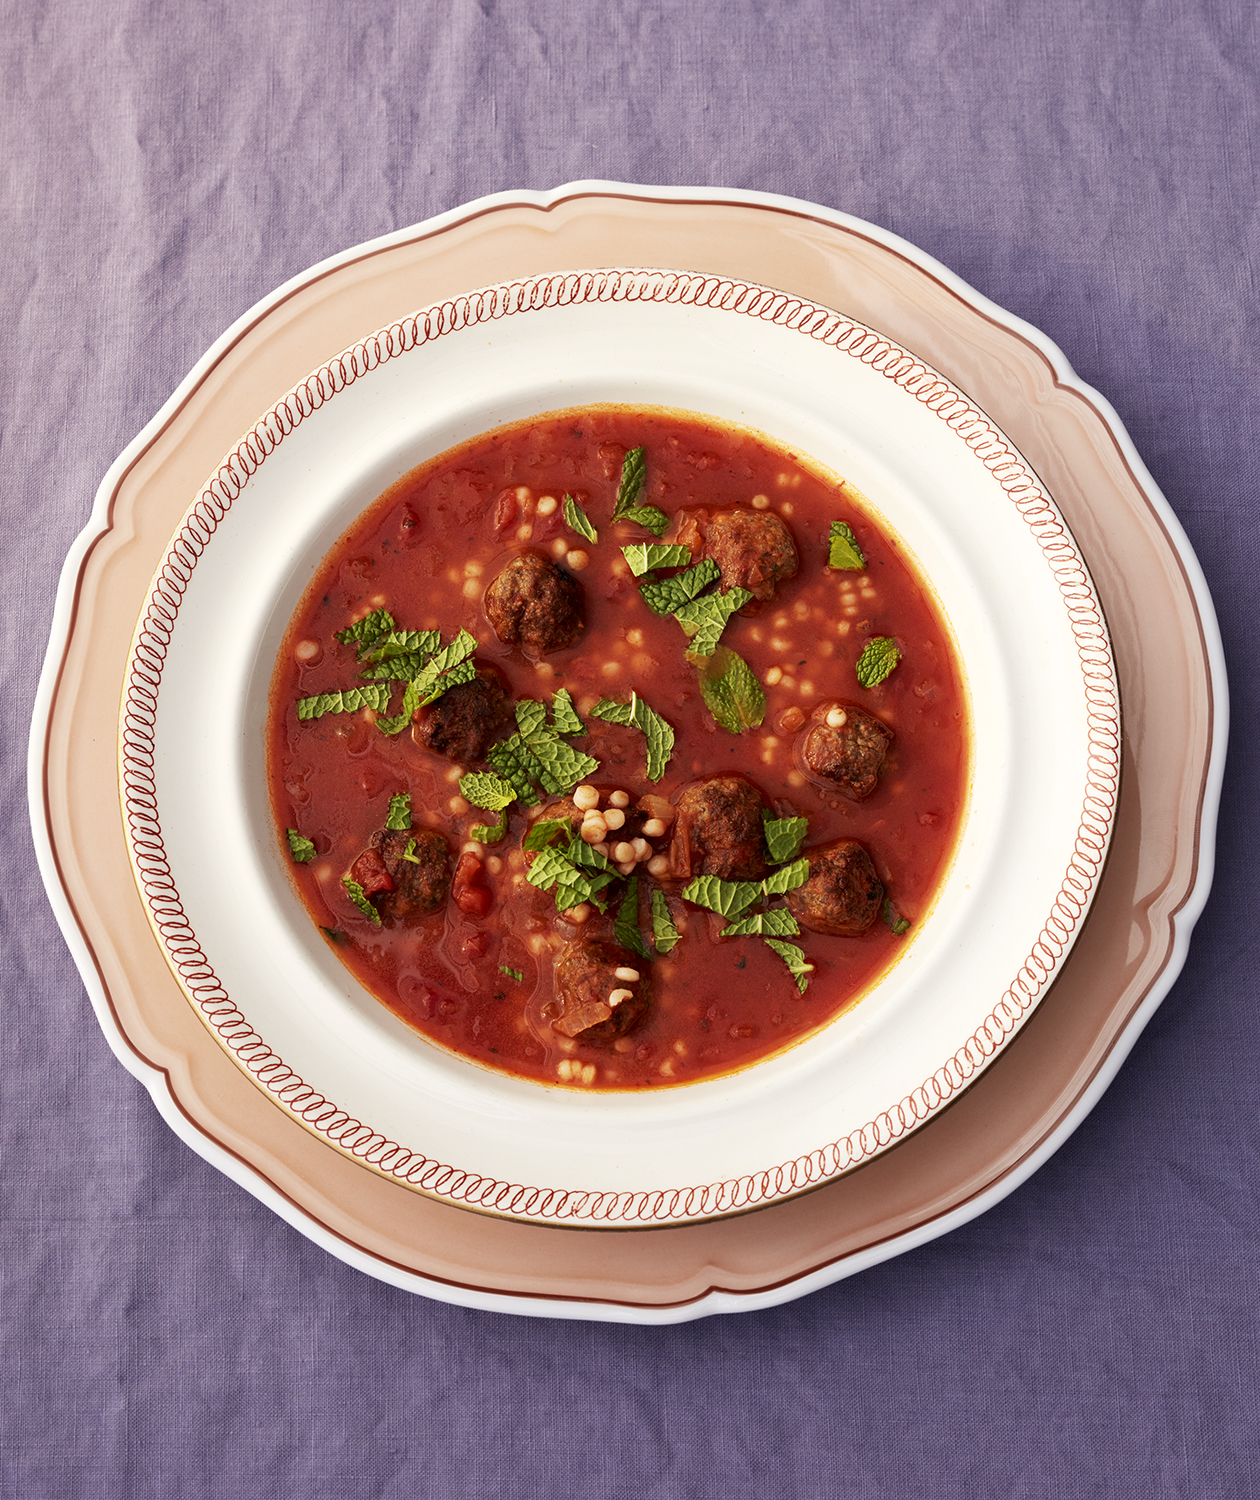 Spicy Tomato Soup With Lamb Meatballs and Israeli Couscous